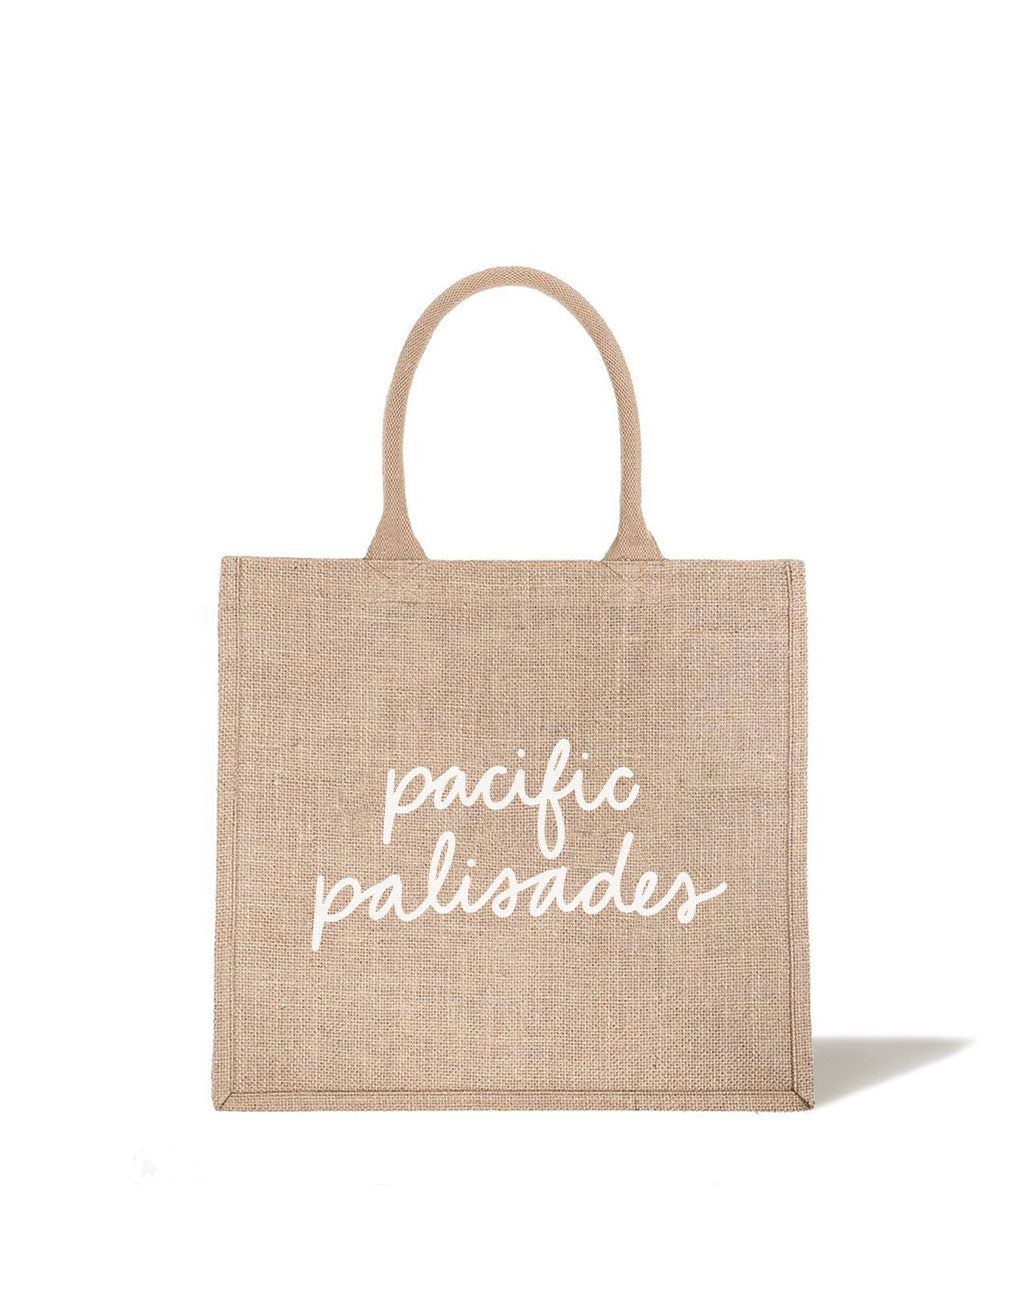 Large Pacific Palisades Reusable Shopping Tote In White Font | The Little Market